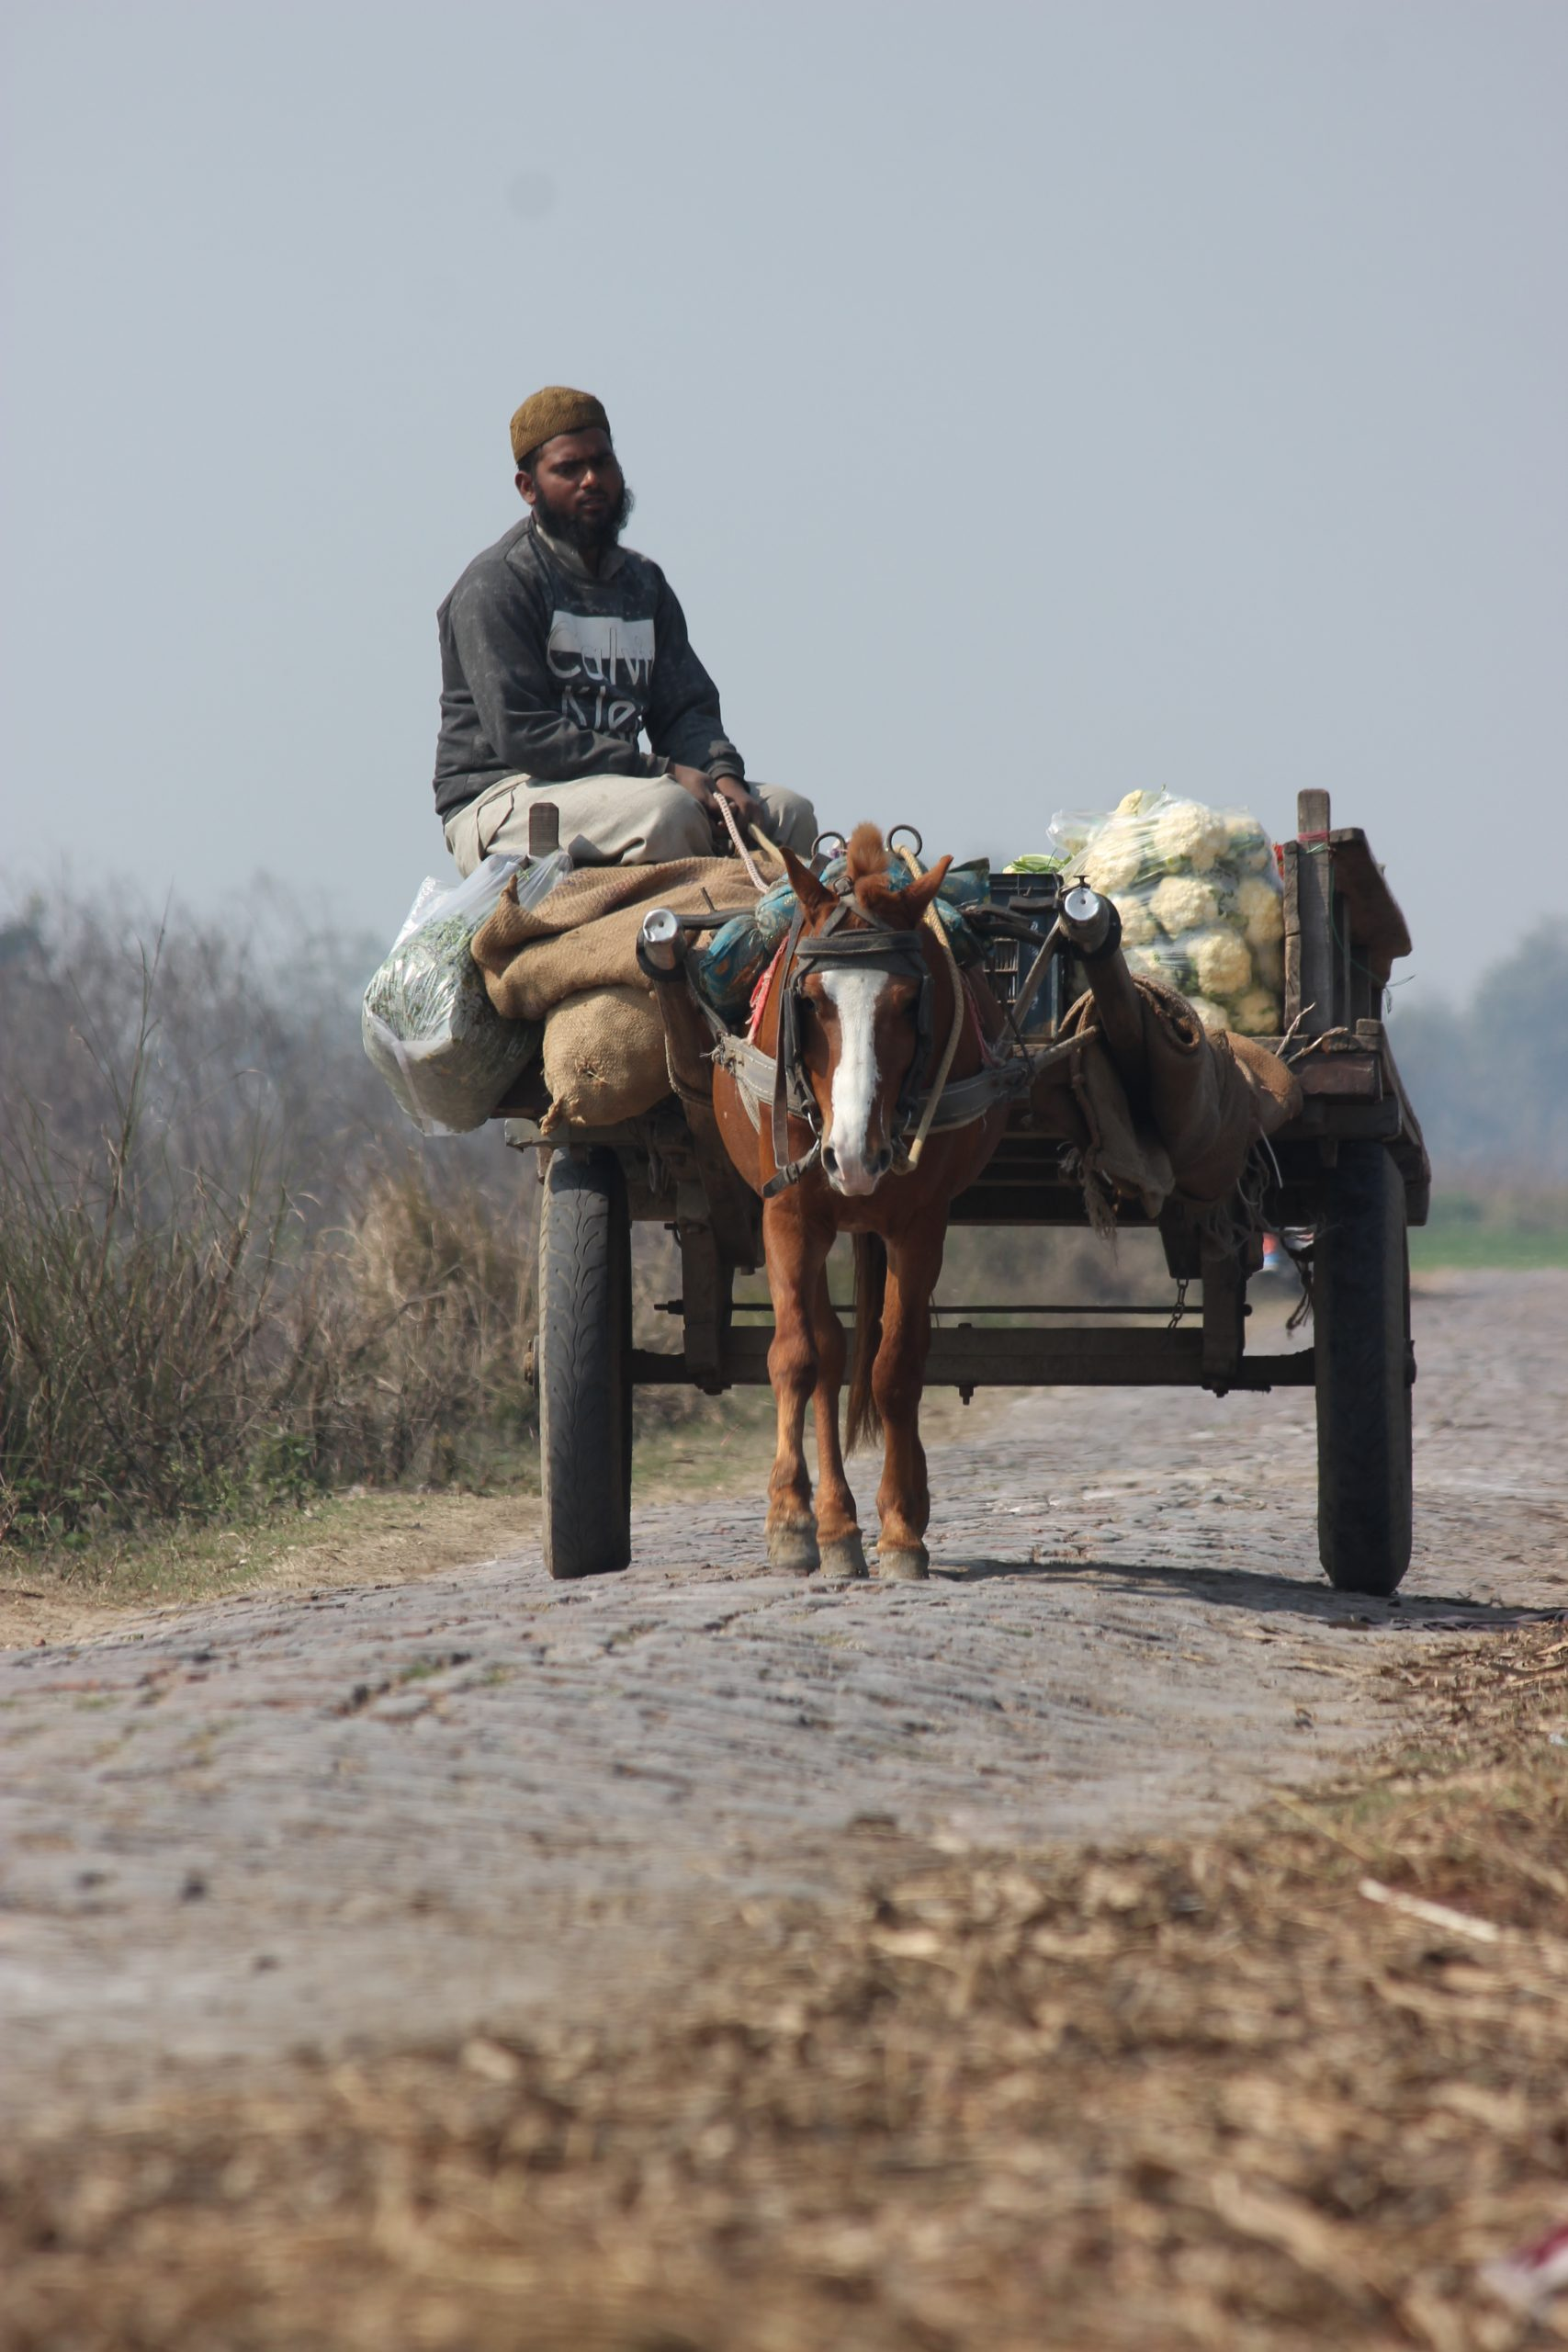 A man carrying load on horse cart